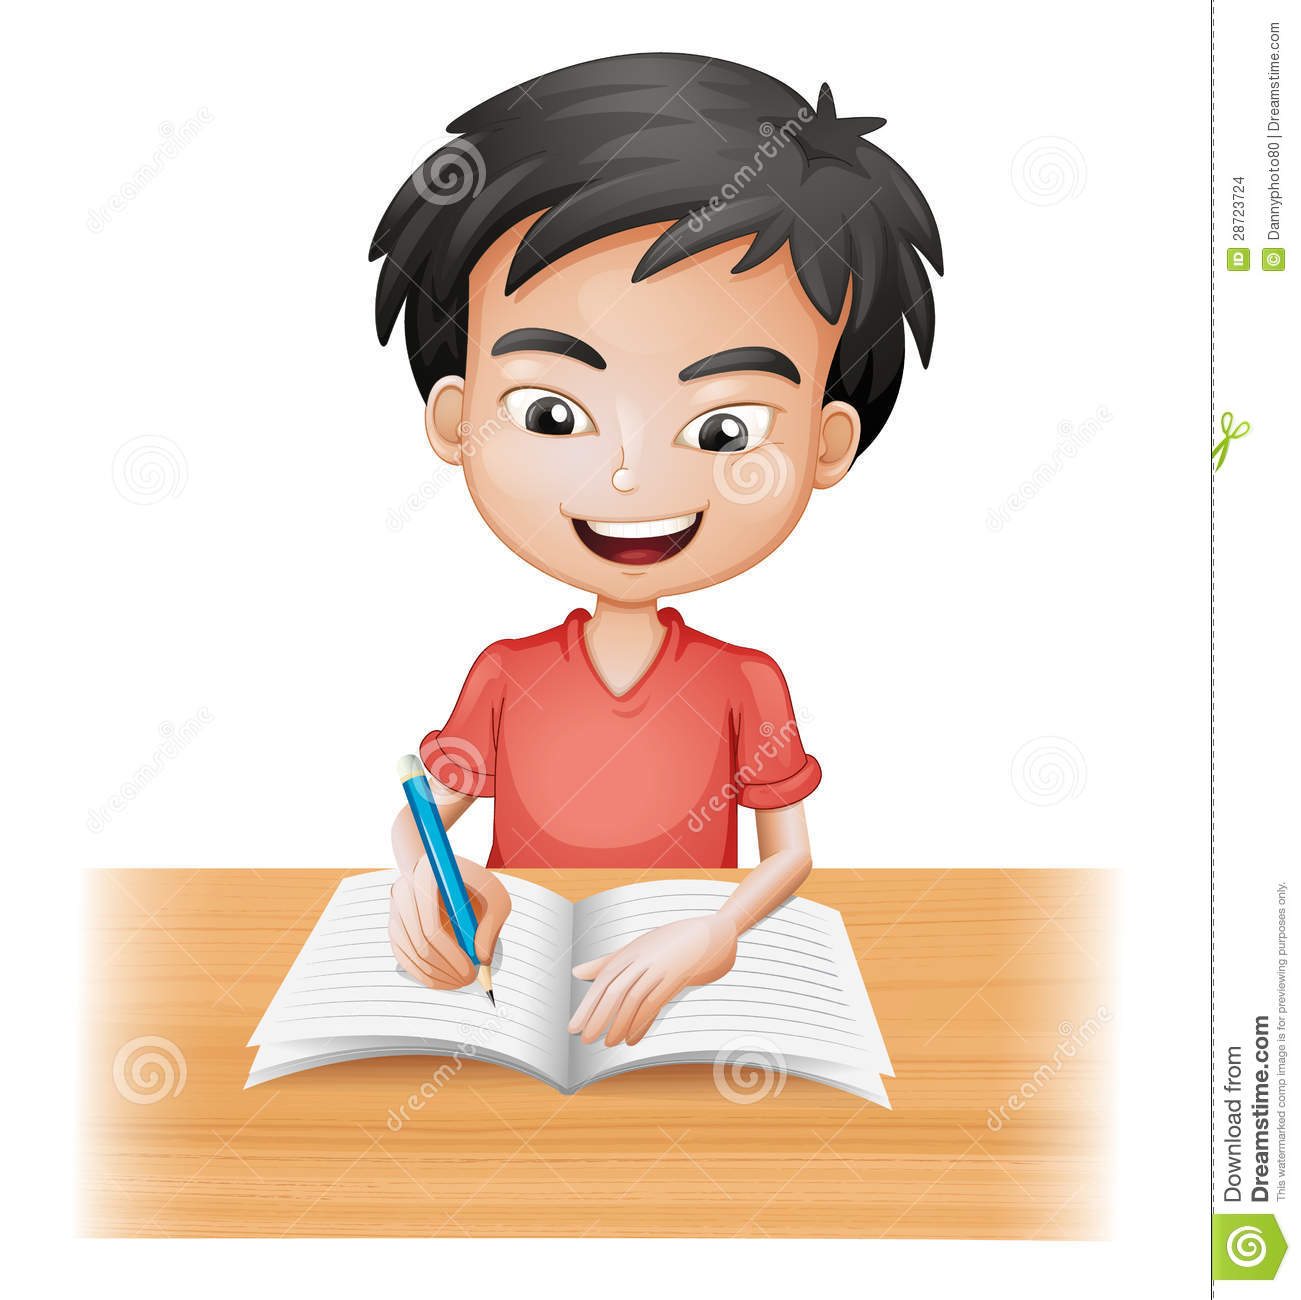 Illustration Of A Smiling Boy Writing On A White Background